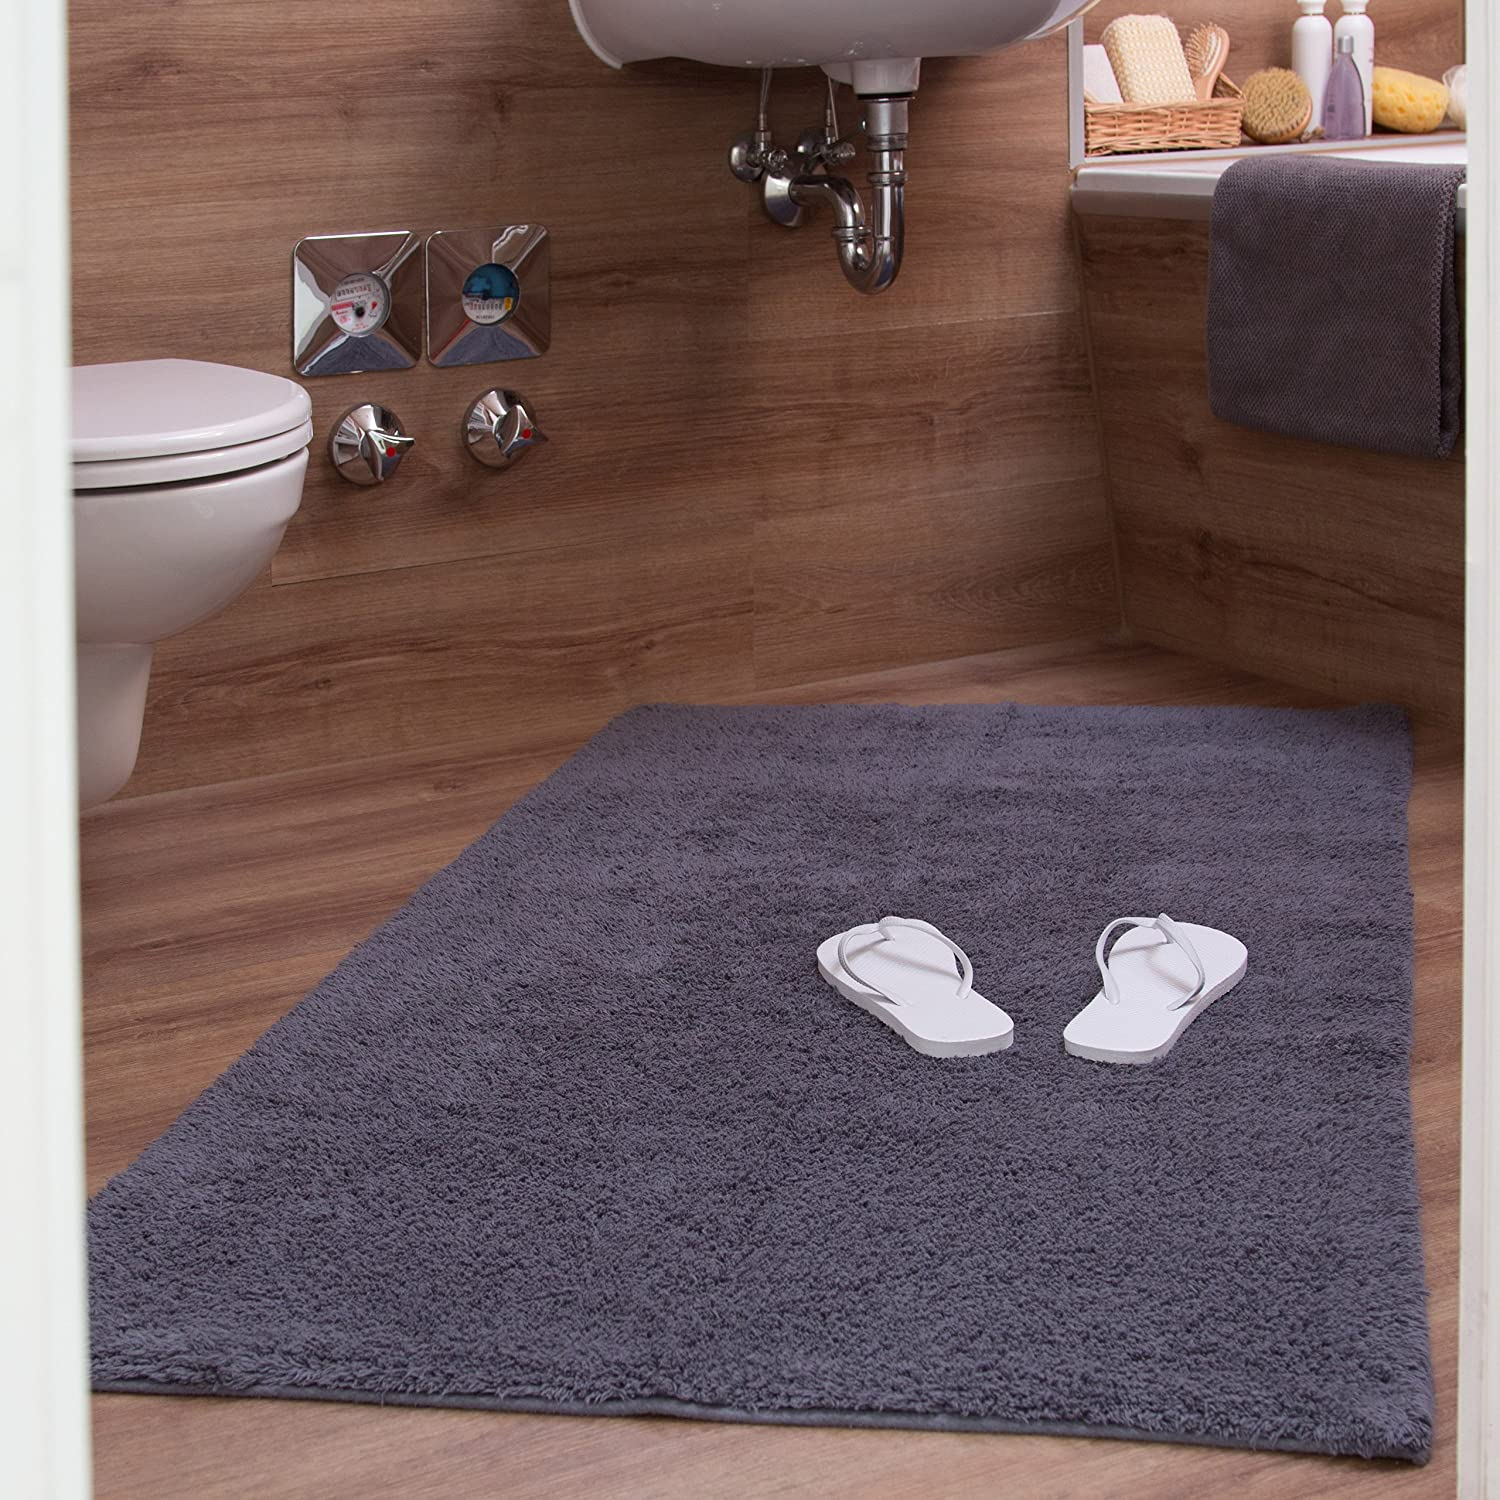 gorgeous slip gray mats designs and mat bathroom neat floor sets improvement beautiful perfect photos design ideas bath non rug heated rugs grey amazon home